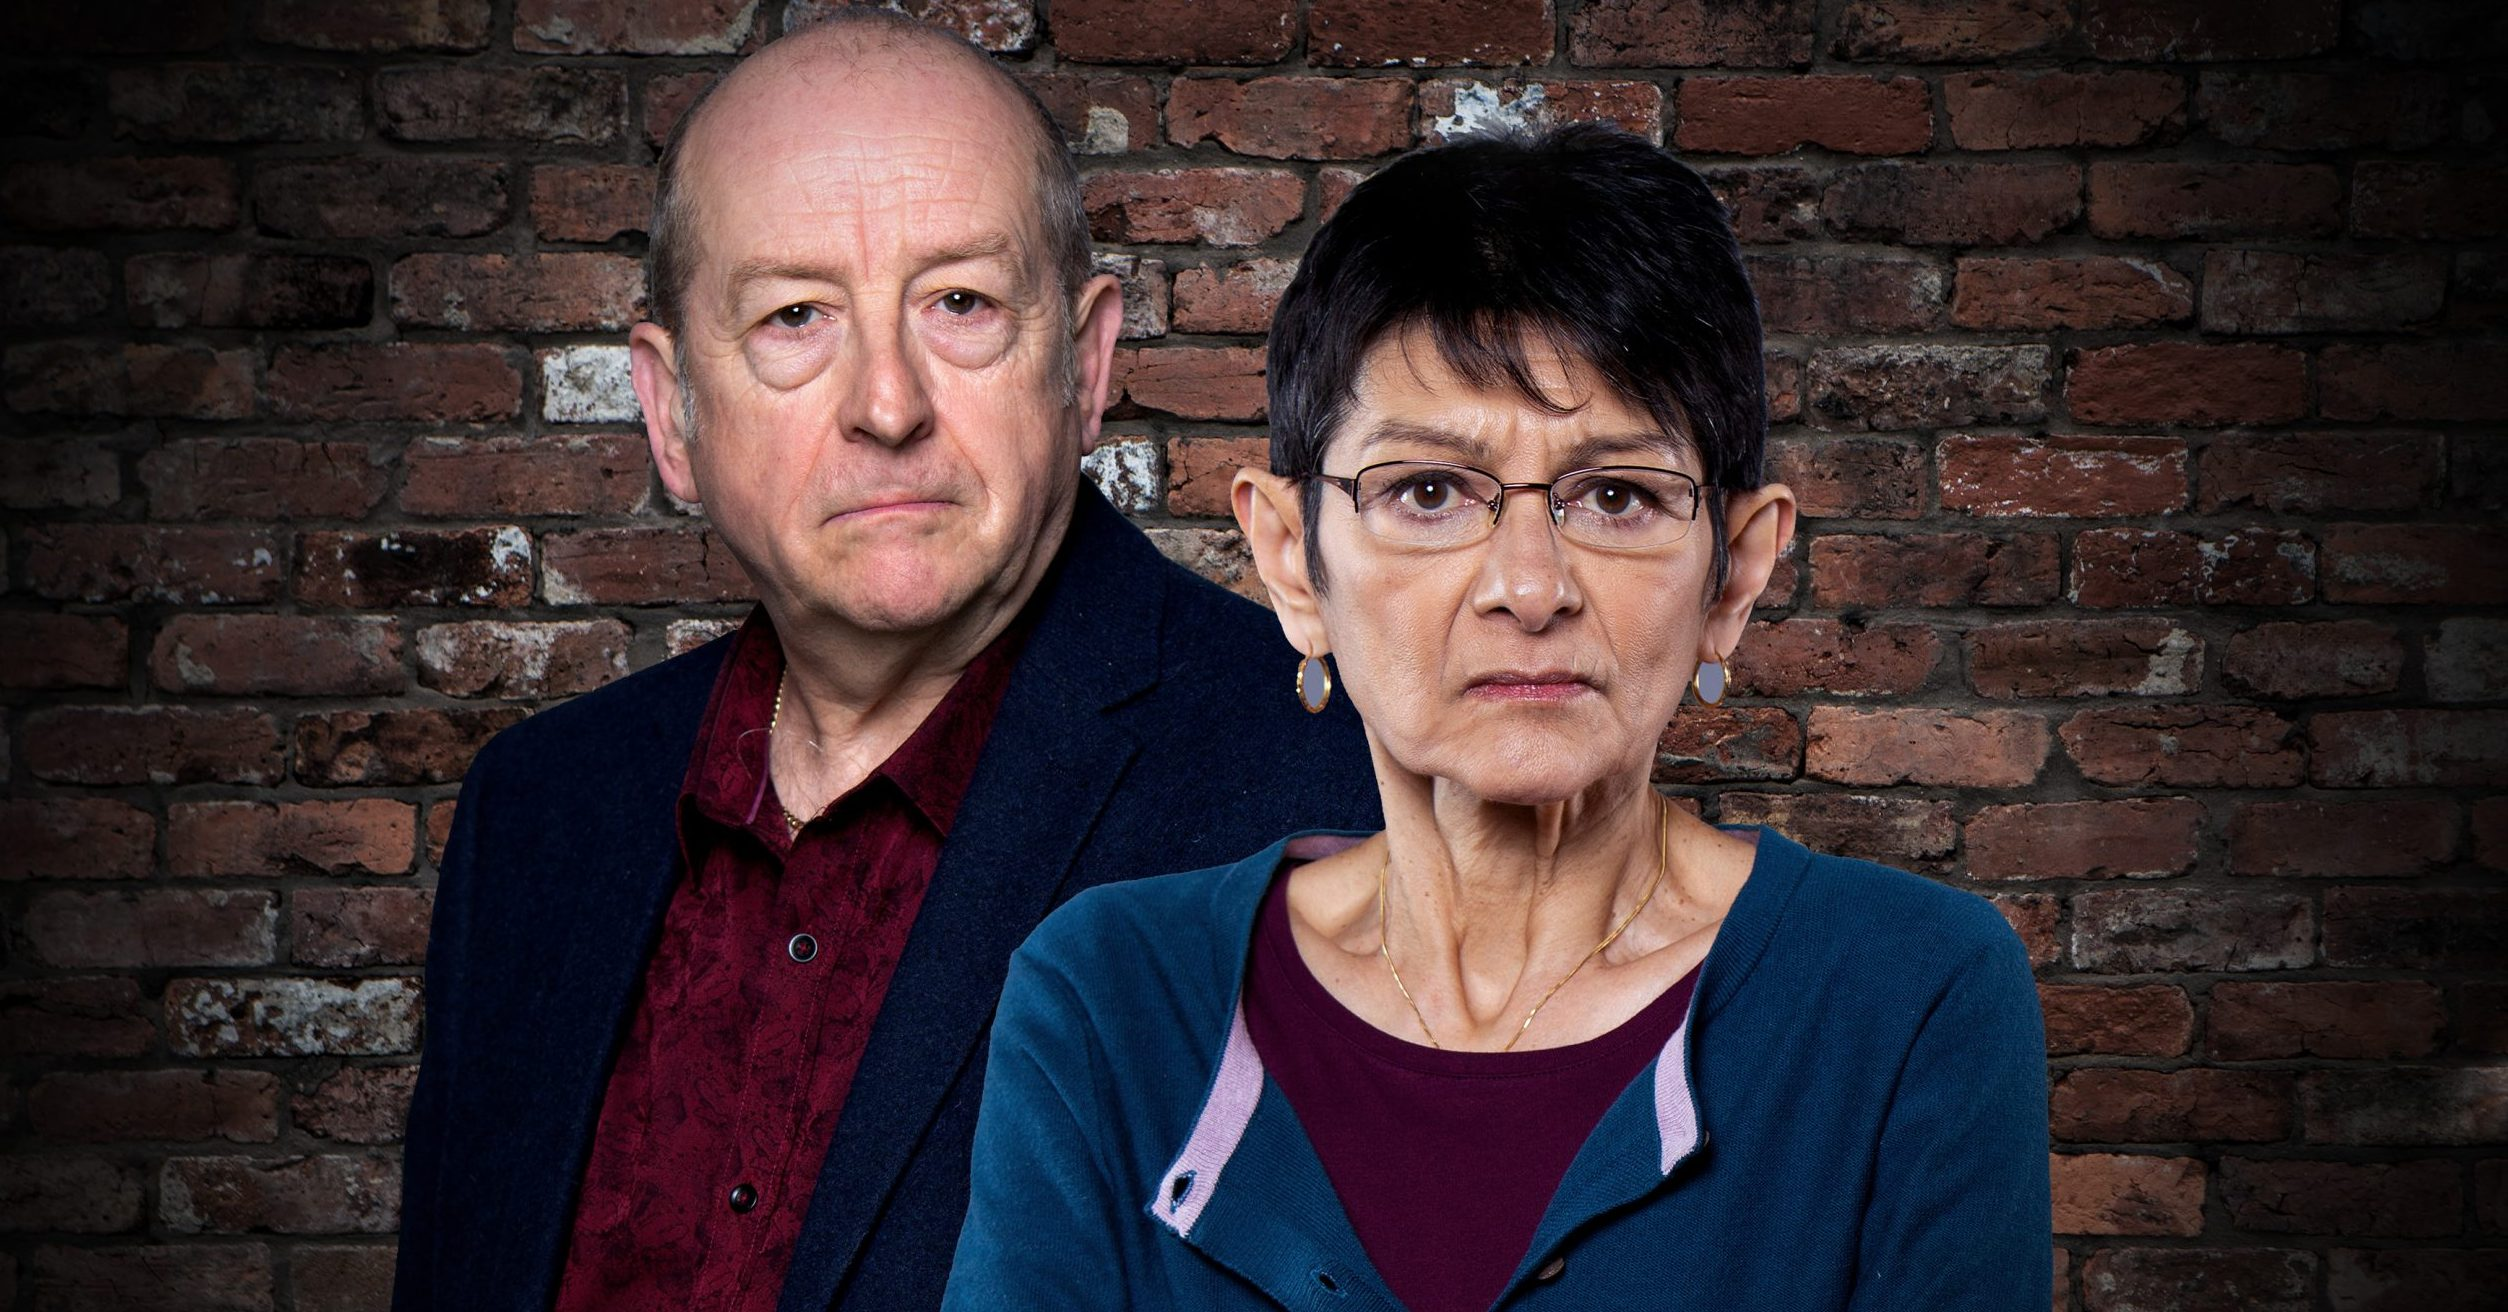 Coronation Street fans demand return of Geoff and Yasmeen to forefront of the plots